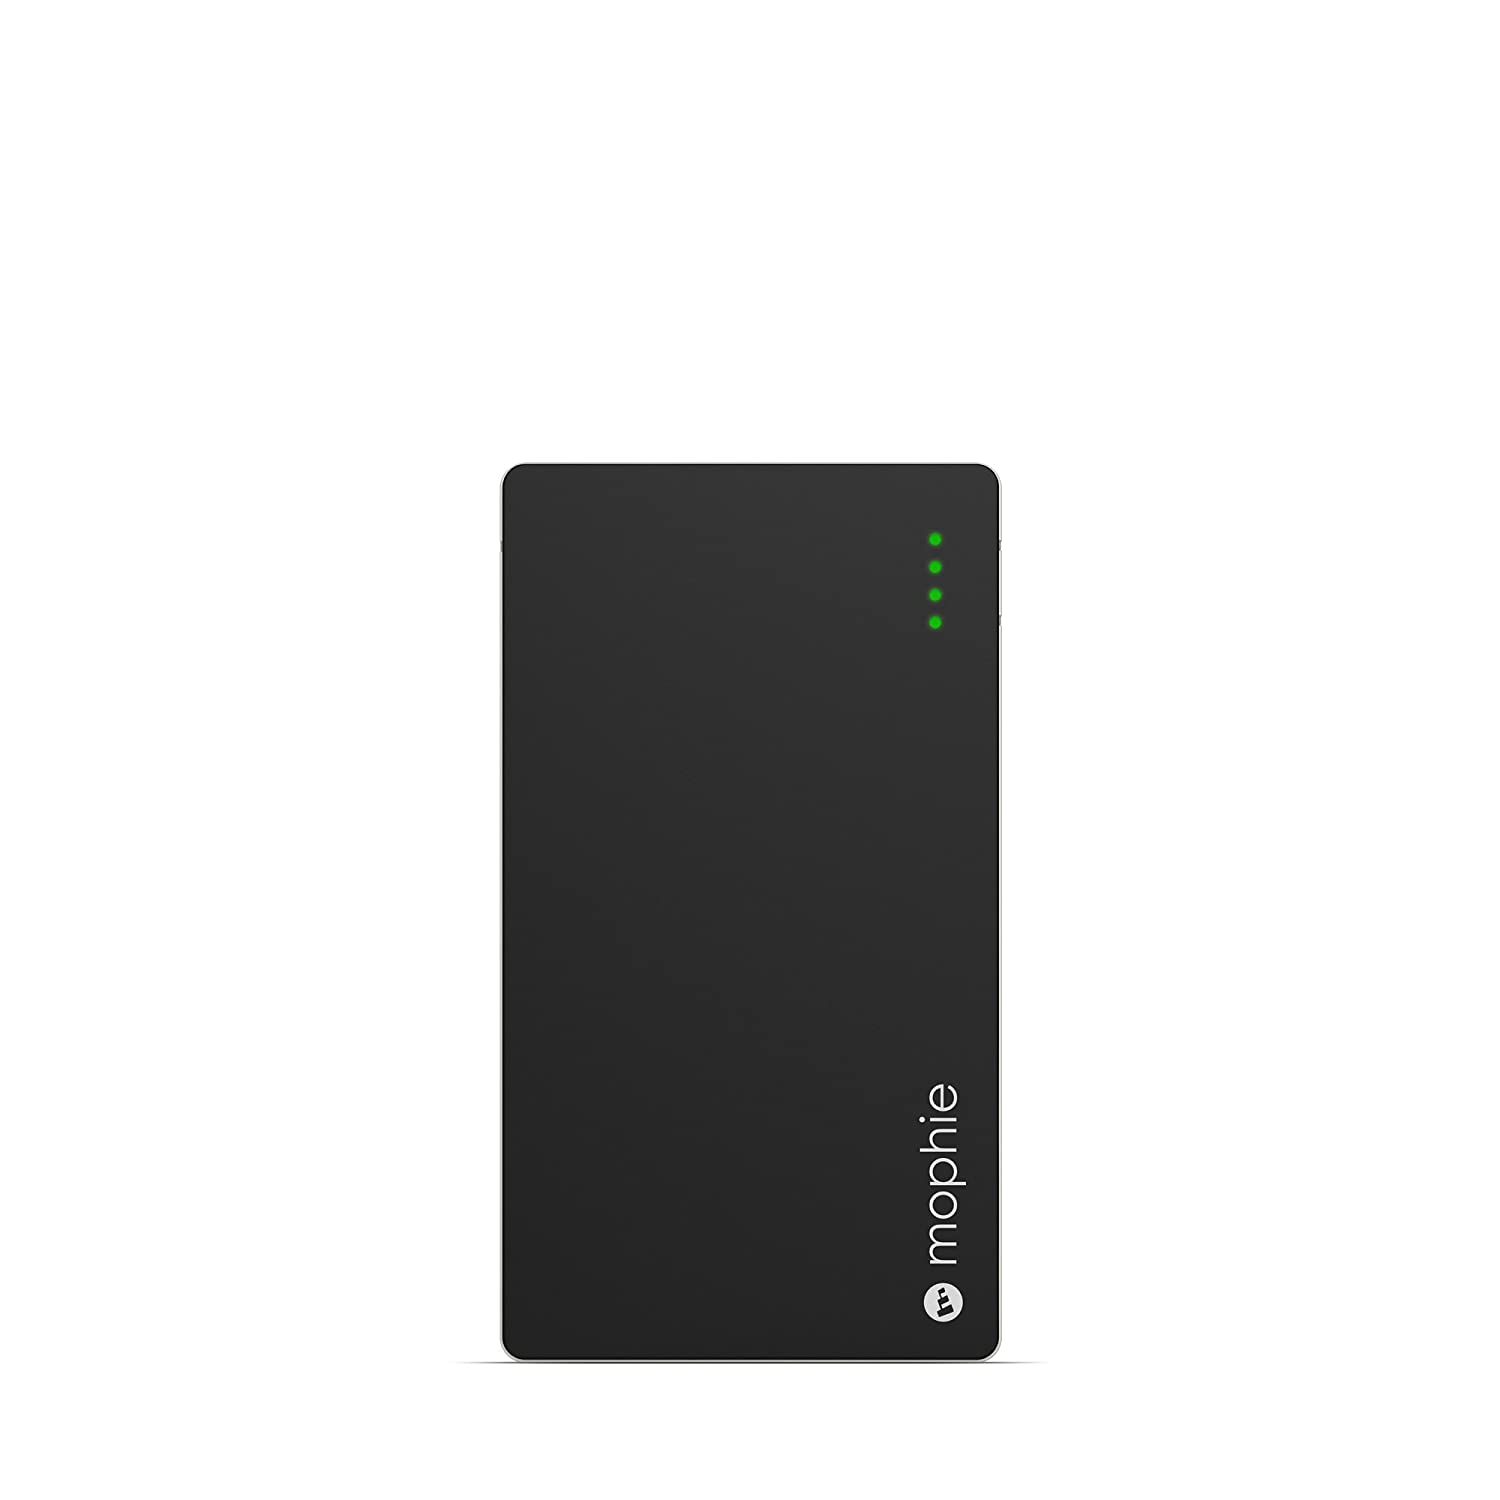 mophie powerstation 4000 Universal External Battery - Black 2032_JPU_PWRSTION-G